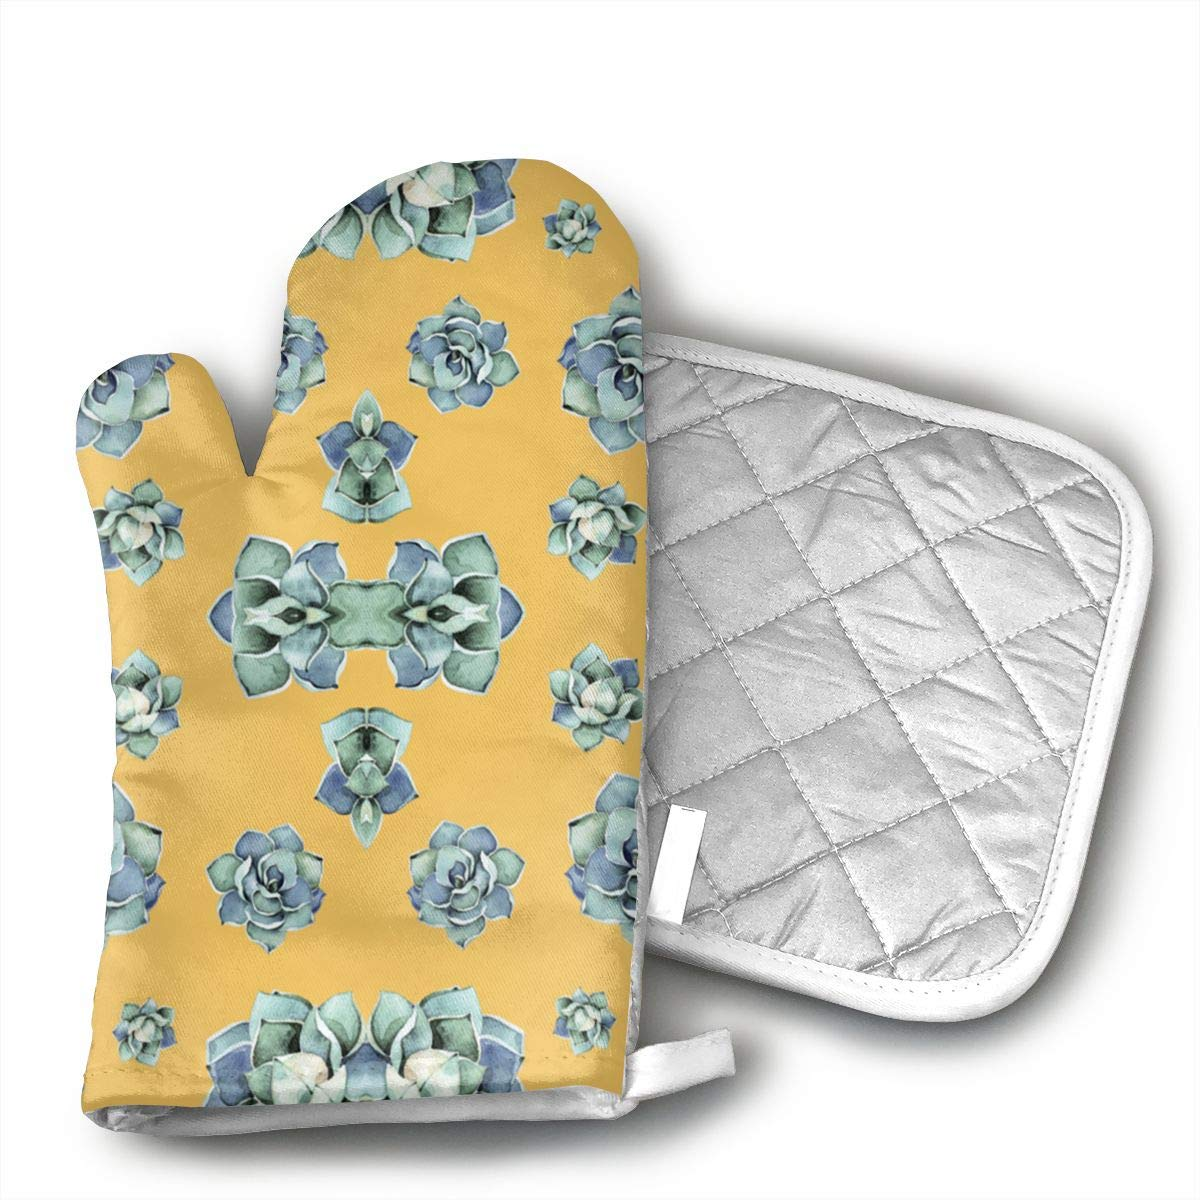 Wiqo9 2' Happy Day Cactus Denim Wash Mustard Giftwrap (174) Oven Mitts and Pot Holders Kitchen Mitten Cooking Gloves,Cooking, Baking, BBQ.